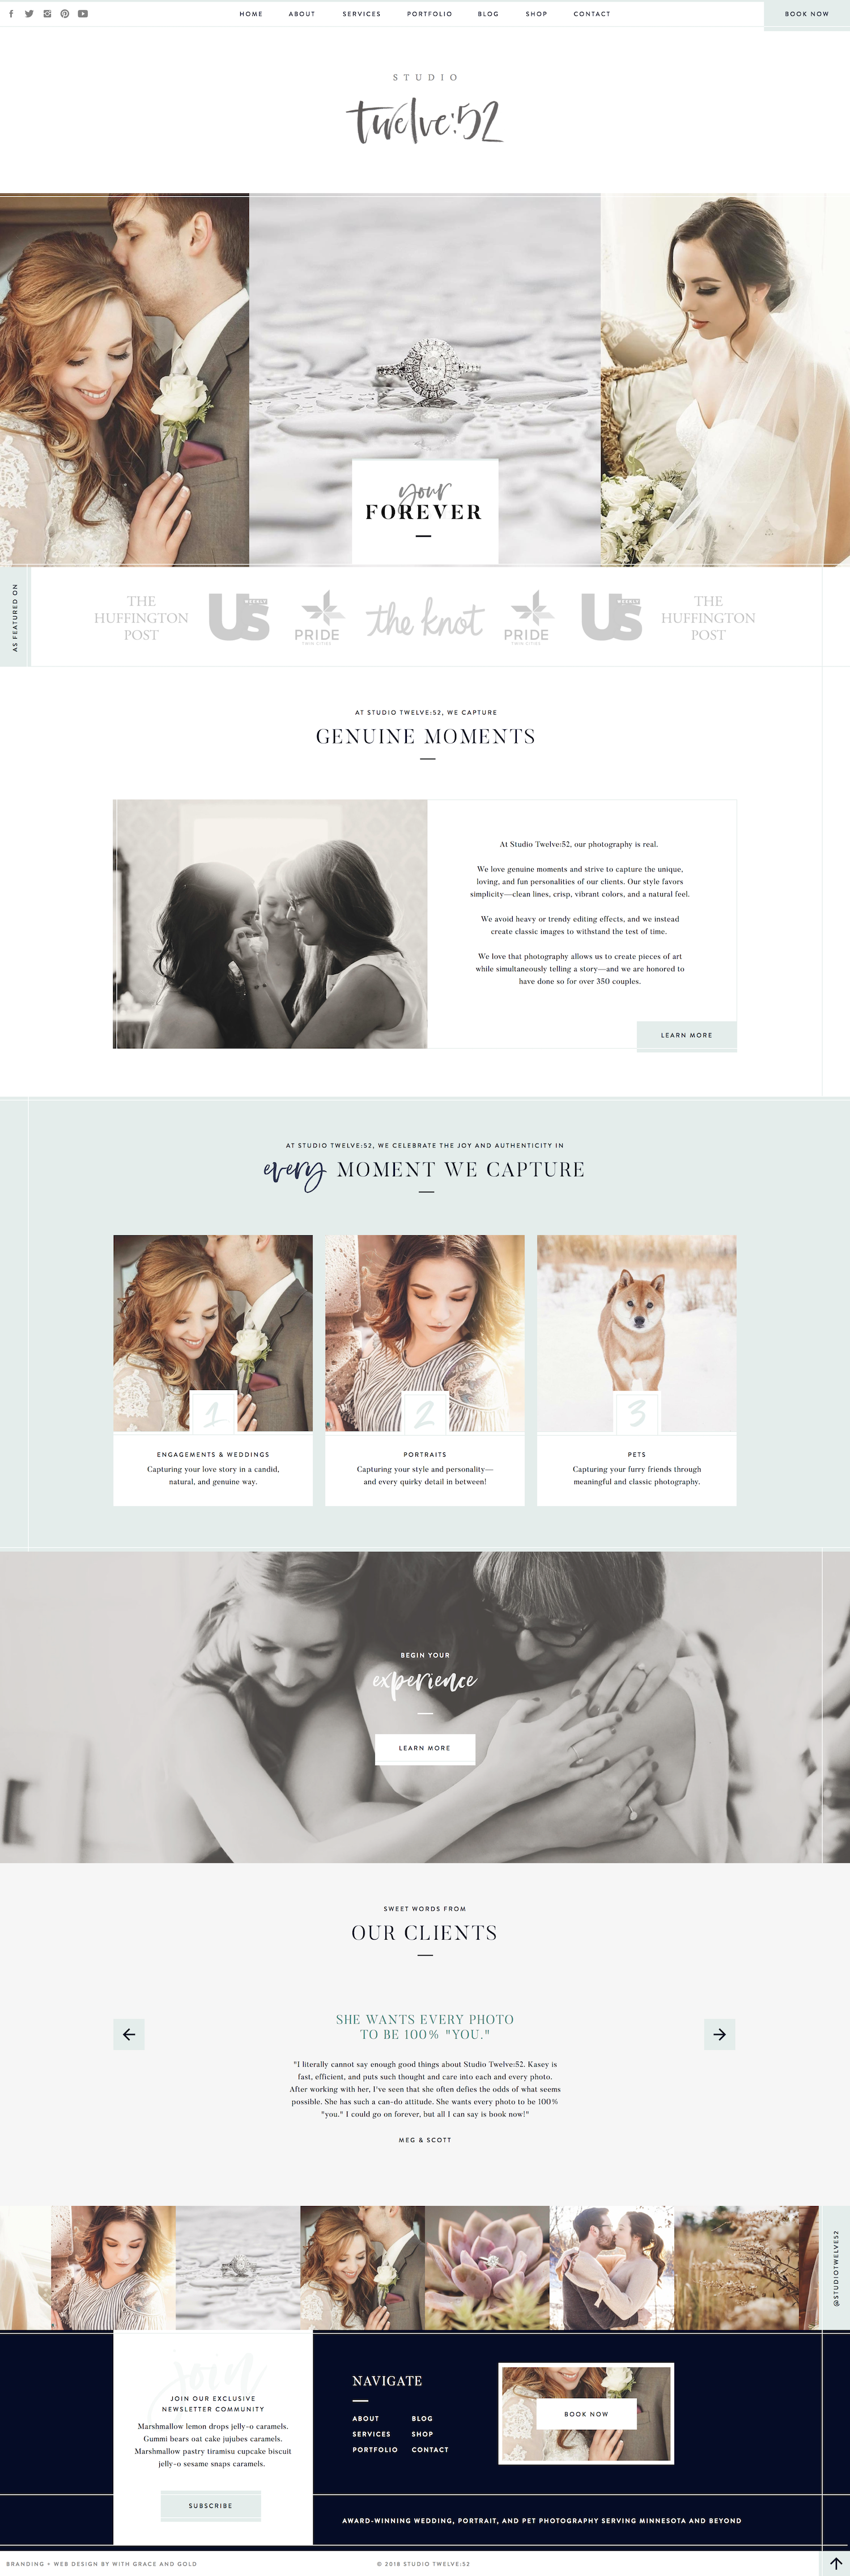 With Grace And Gold Branding Web Design And Education For Creative Women In Business Blog Design Inspiration Web Layout Design Web Development Design